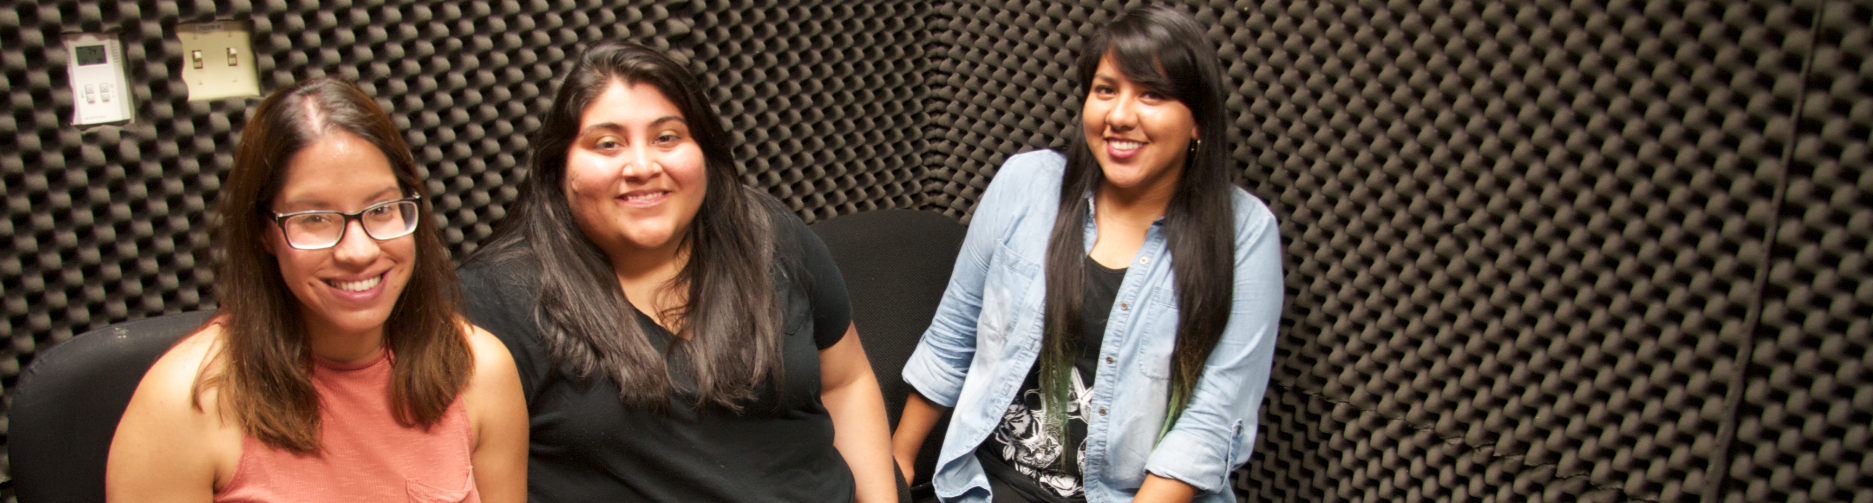 Lets Talk Community – 09.21.15 – Hermanas Unidas